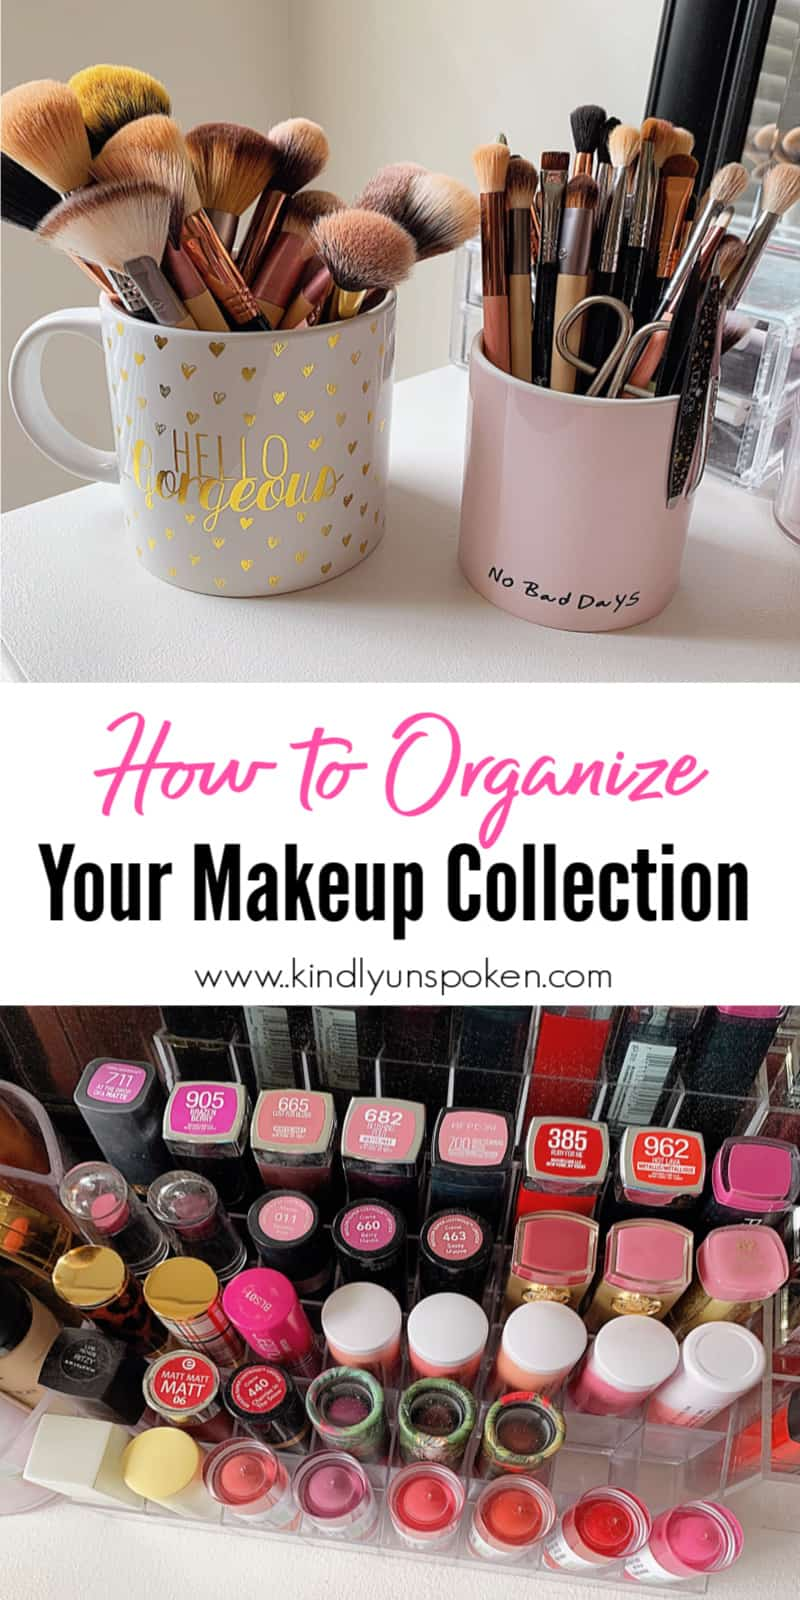 Learn how to organize makeup on your vanity, in your bathroom drawer, or in small spaces with the best makeup storage ideas and makeup organizers. These helpful organizational tips and makeup storage solutions will help keep all your makeup, beauty, and skincare products nice and organized. #makeuporganizer #organizationaltips #makeupstorage #makeuptips